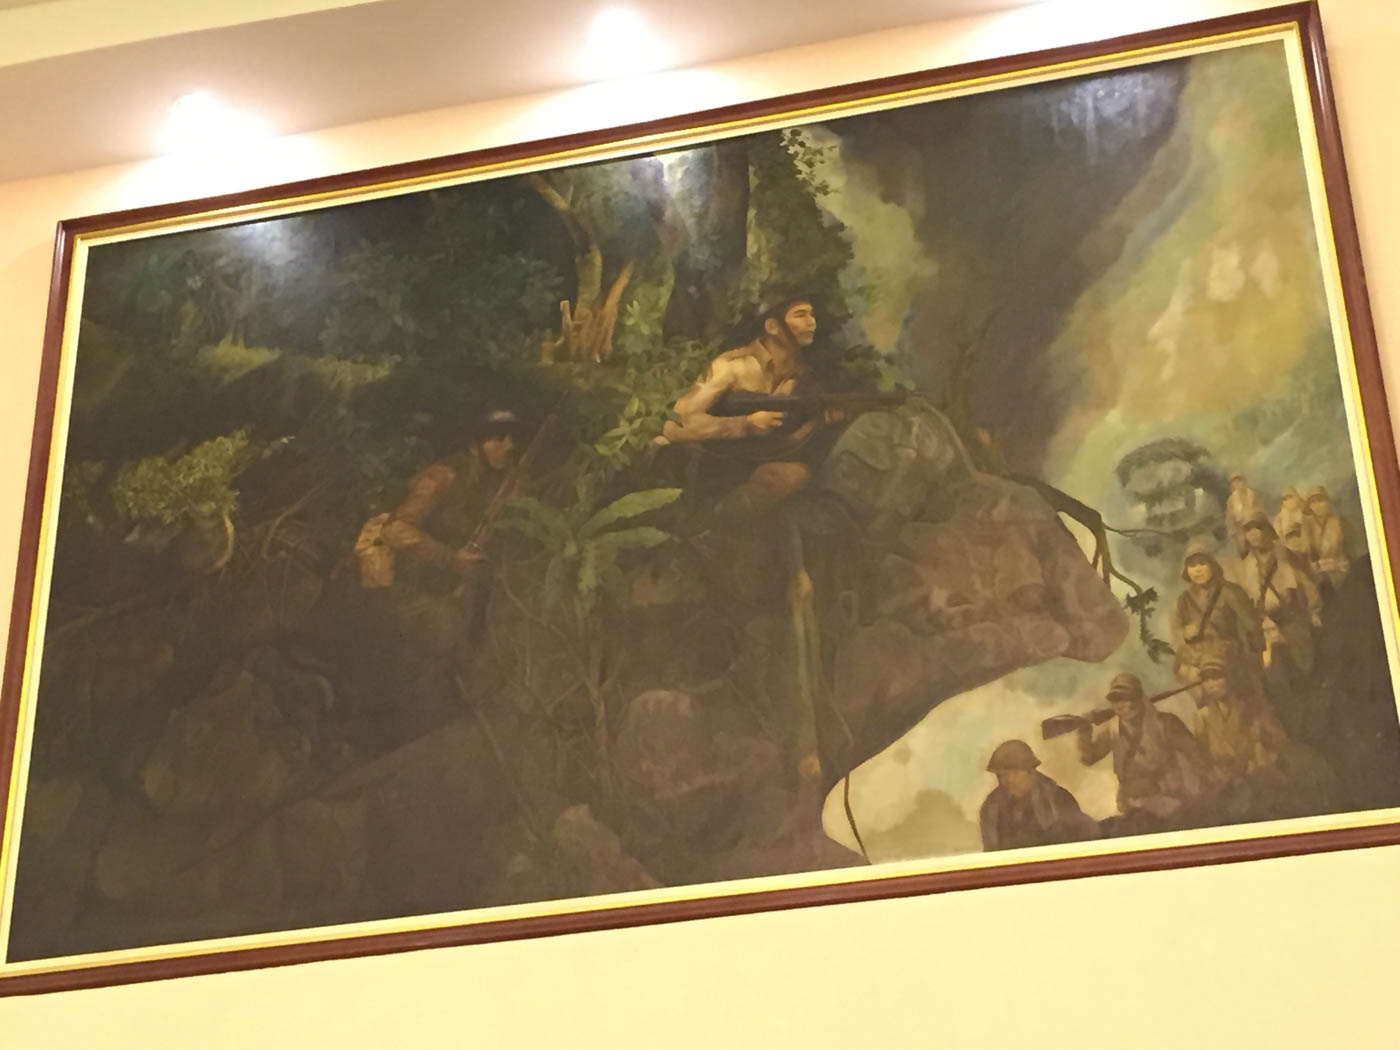 FERDINAND MARCOS. The late dictator is depicted here as a soldier. Photo by Bea Cupin/Rappler